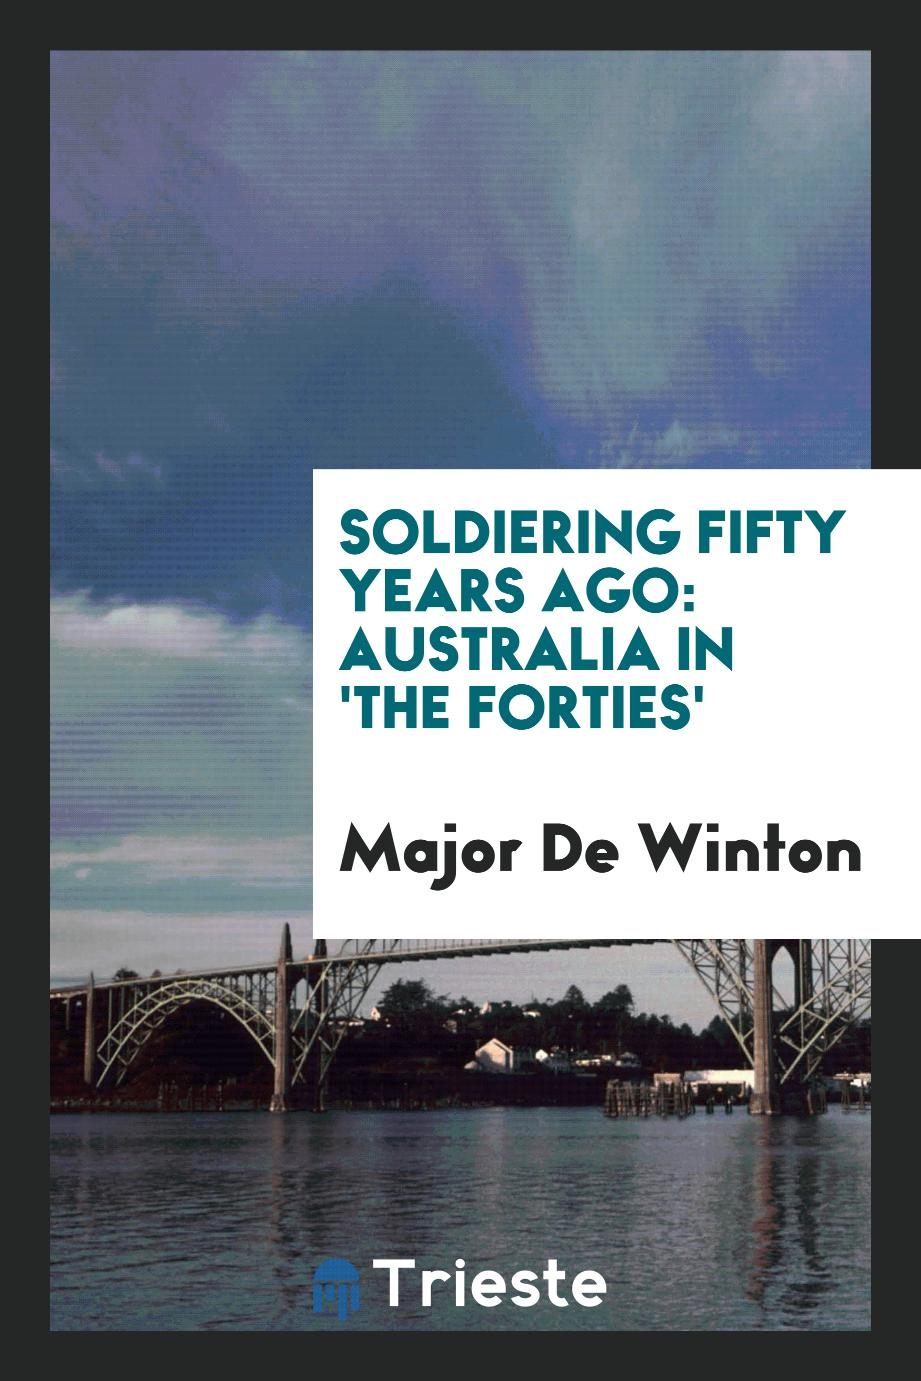 Soldiering Fifty Years Ago: Australia in 'The Forties'